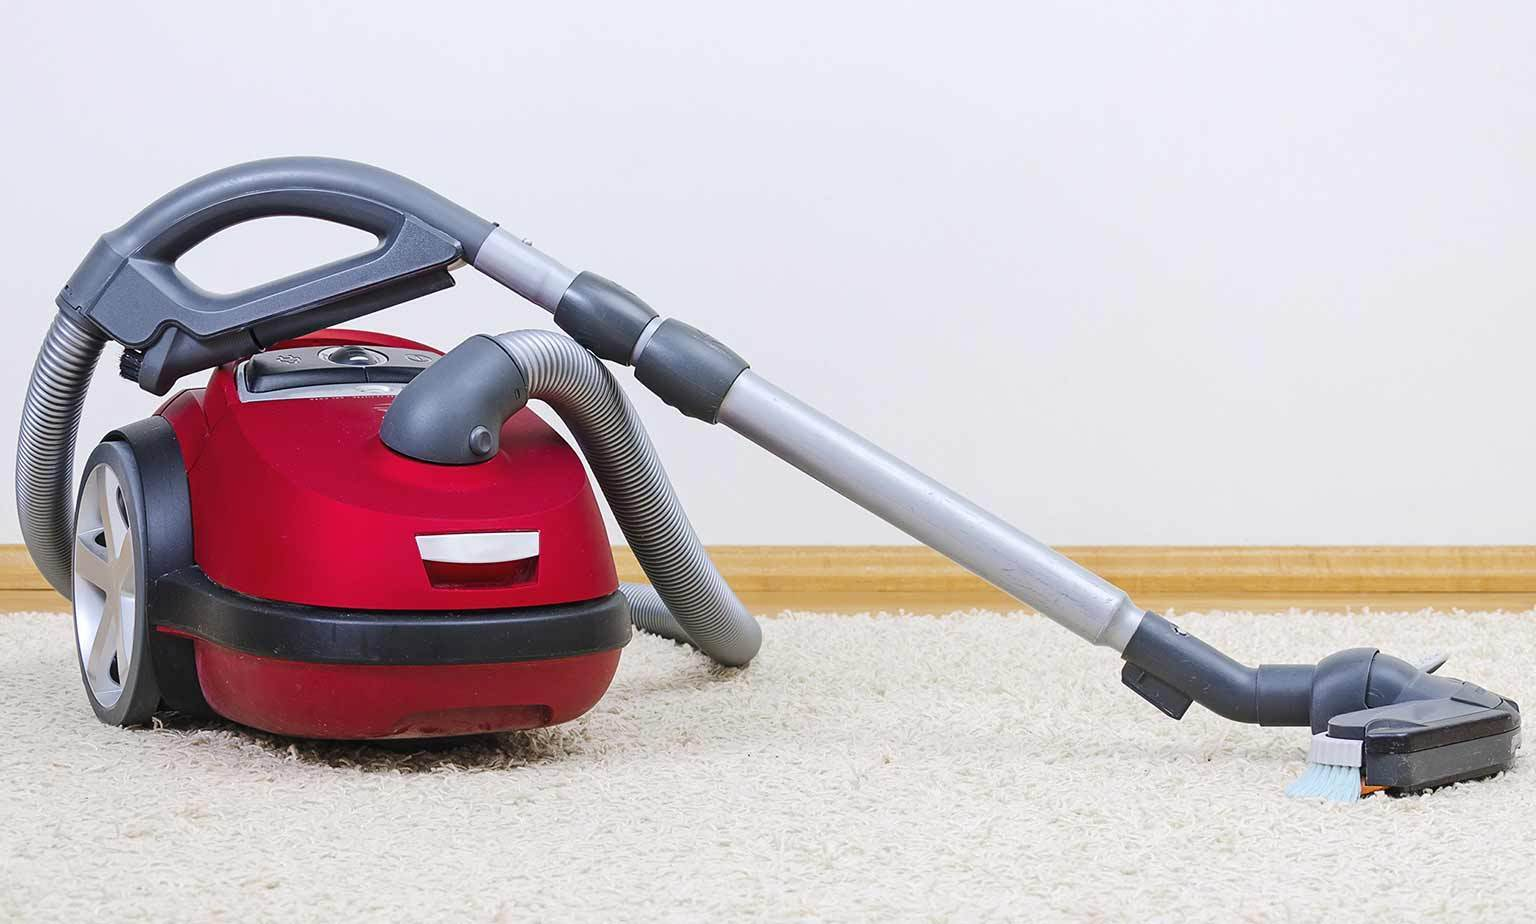 Hoovers & Steam Cleaners Under £50